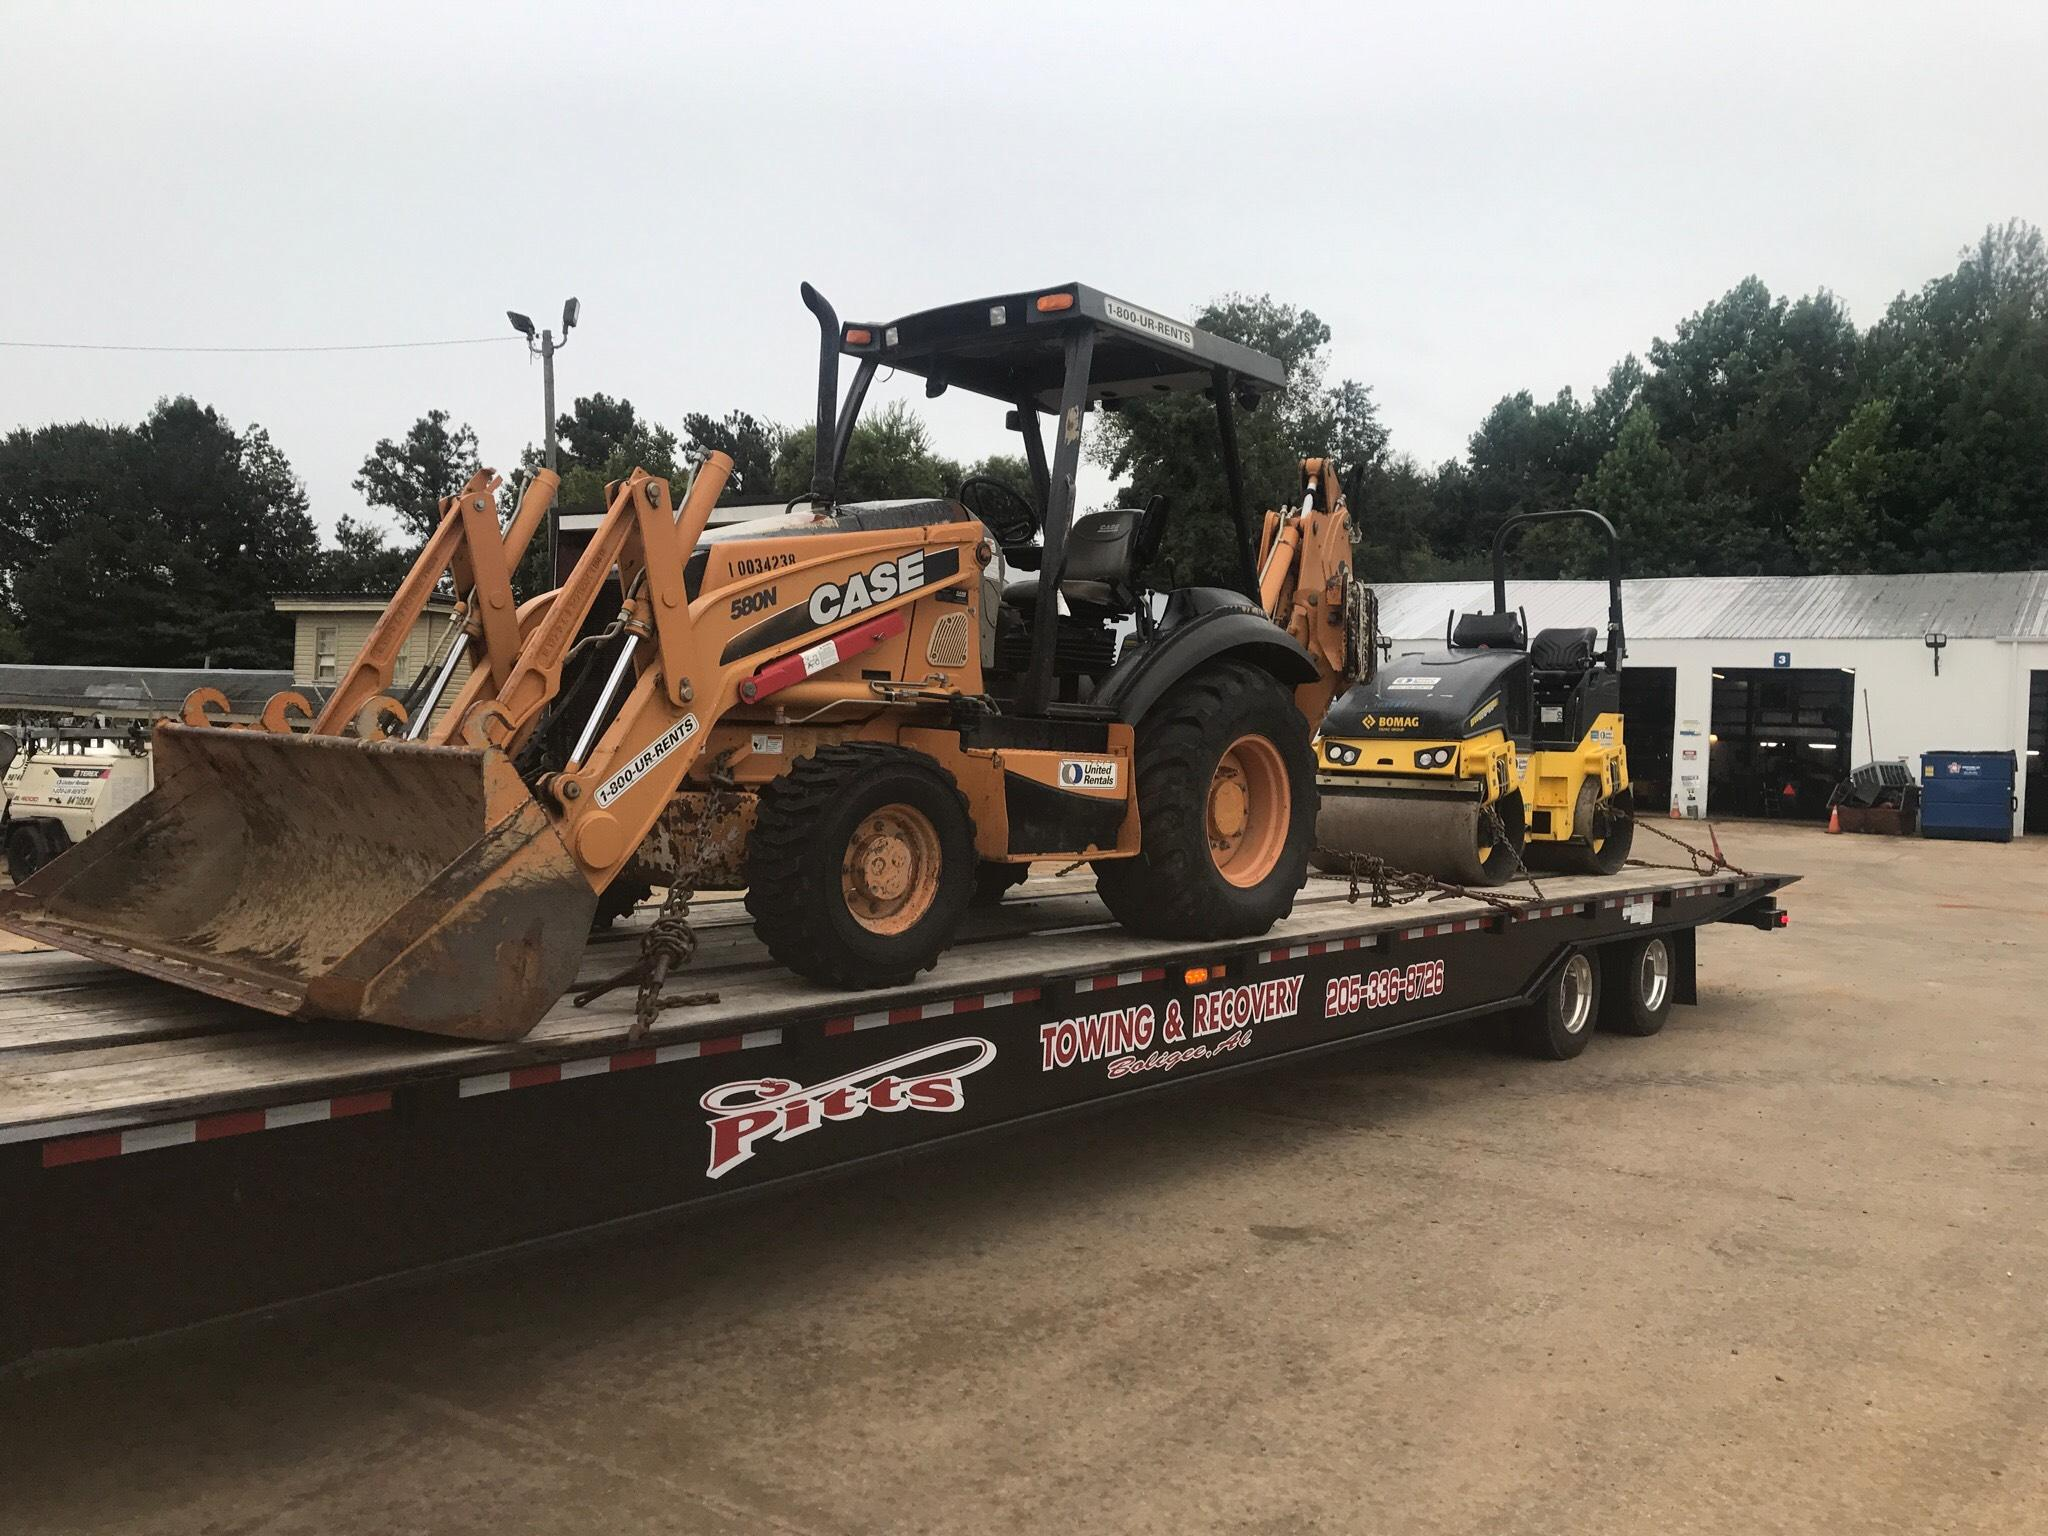 Gene Pitts Towing & Recovery LLC image 5